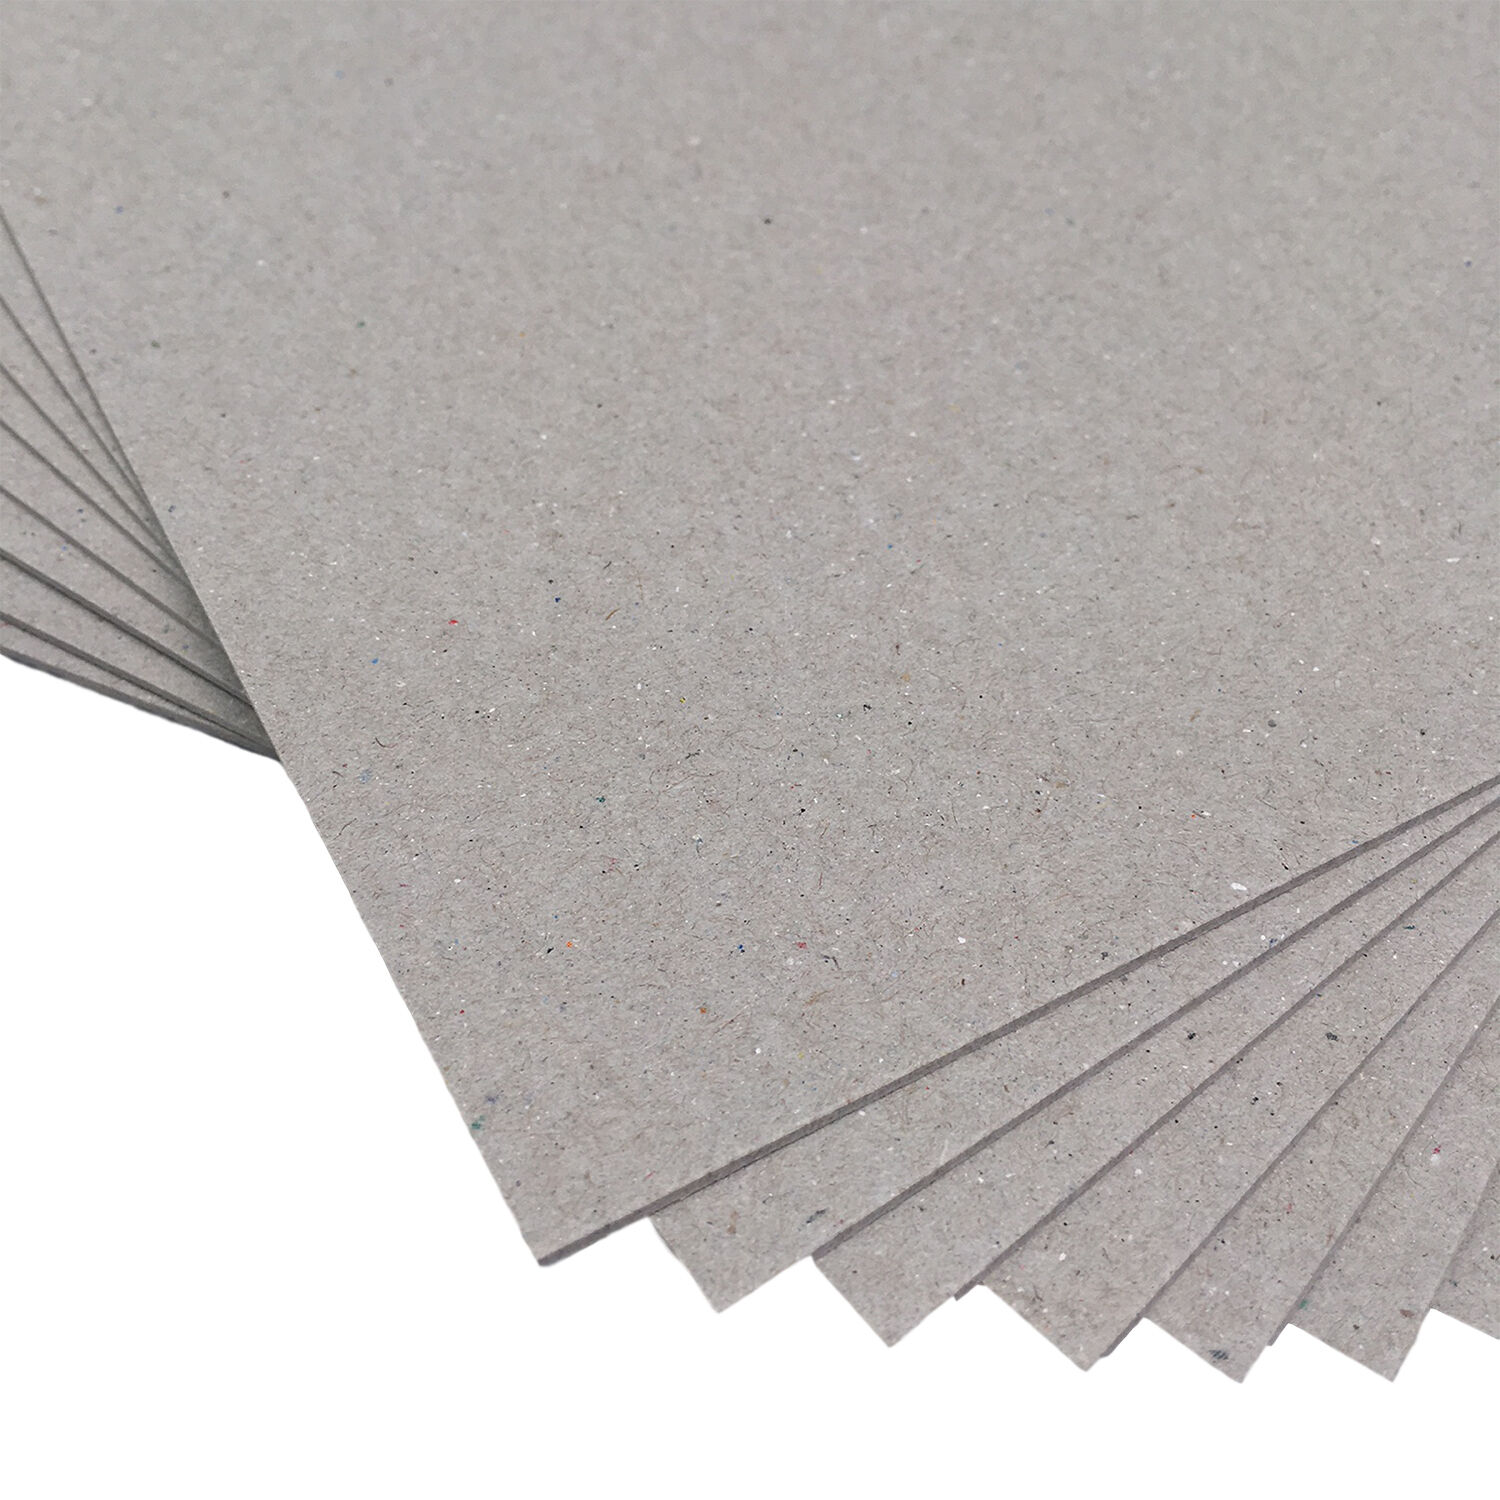 New Boxboard A5 Size 700gsm 50 Sheets - Chipboard Boxboard Cardboard Recycled